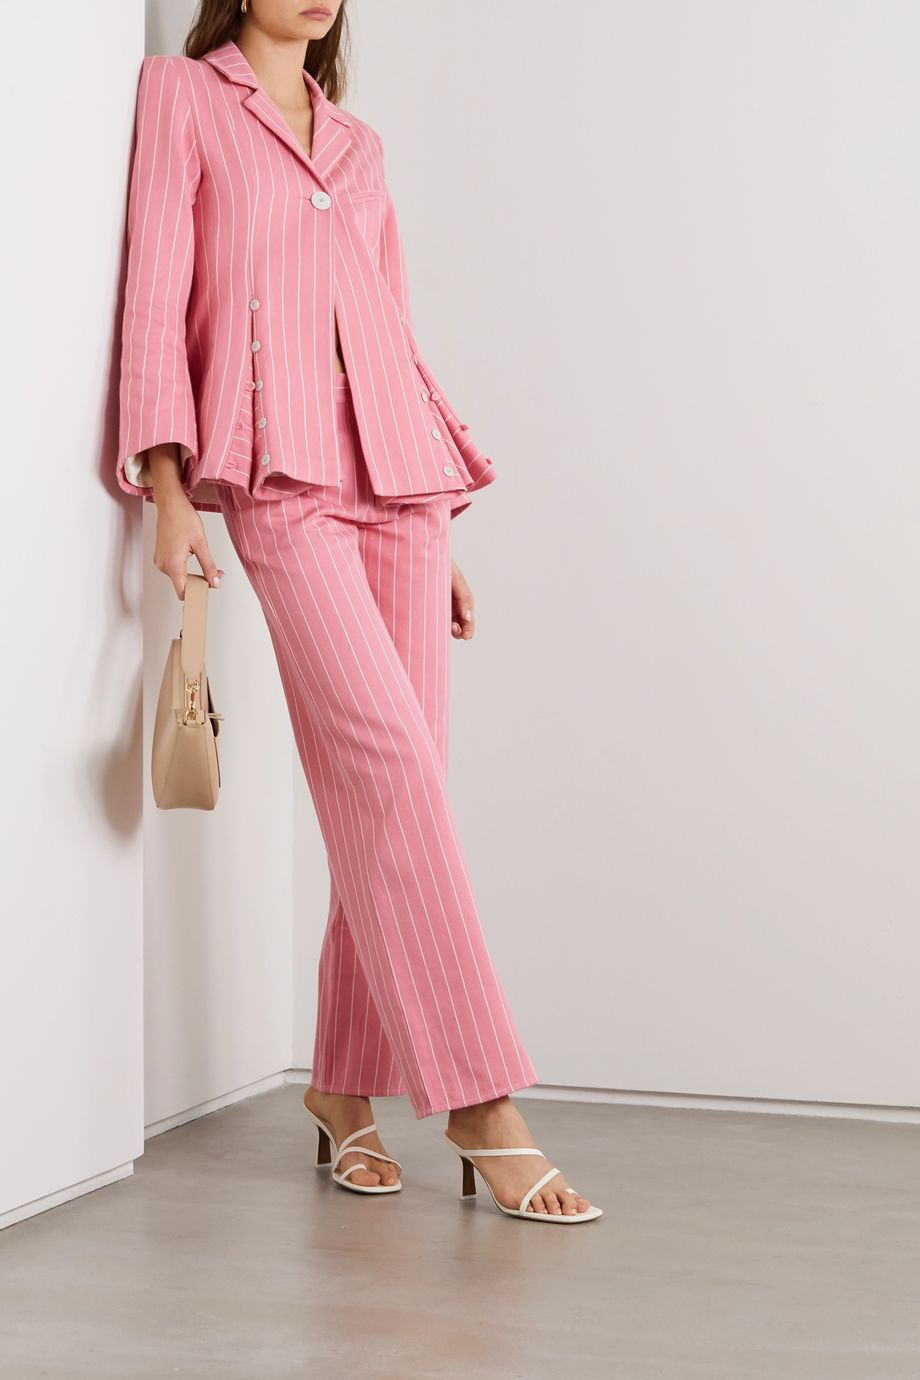 Maggie Marilyn + NET SUSTAIN Powerful In Pink pinstriped organic-cotton twill wide-leg pants